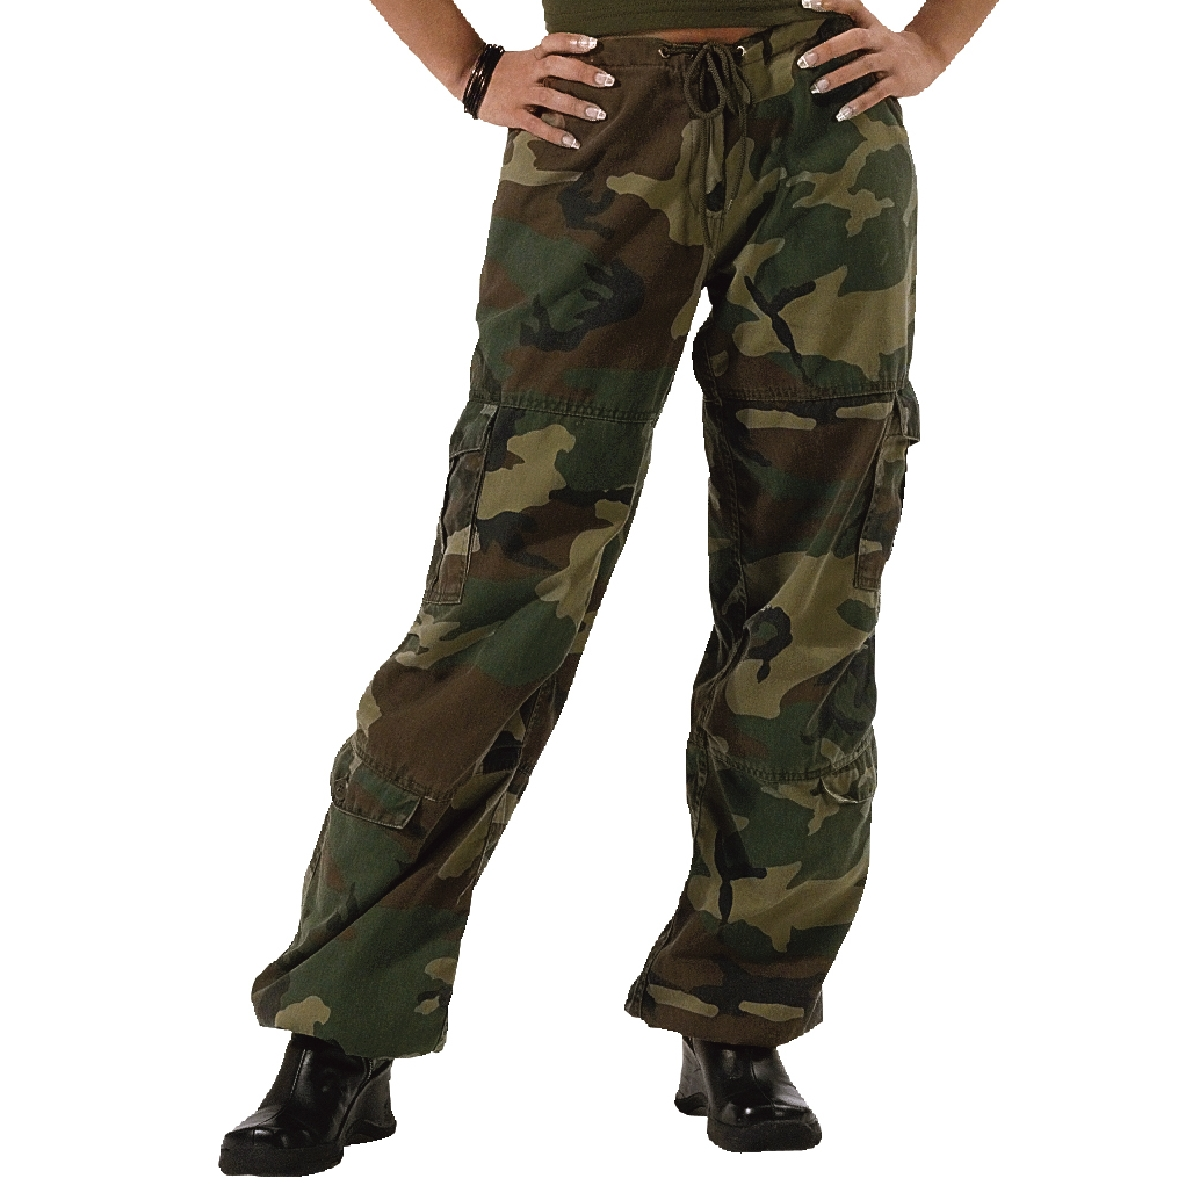 Wonderful Match Juniors Camouflage Cargo Pants 3 From Amazon  Look How I